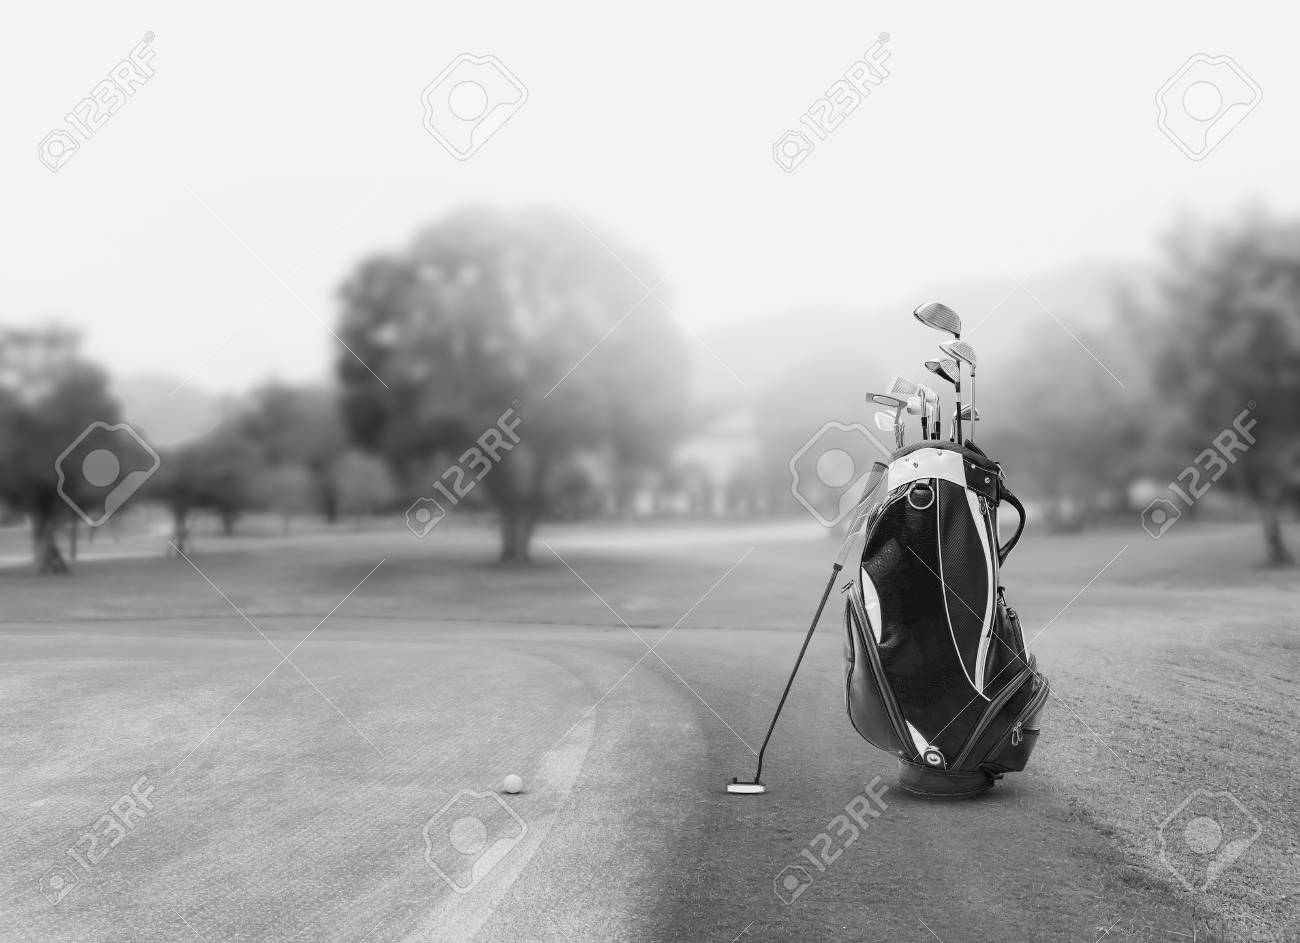 Golf Equipment And Golf Bag Putter Ball On Green And Golf Stock Photo Picture And Royalty Free Image Image 110522234